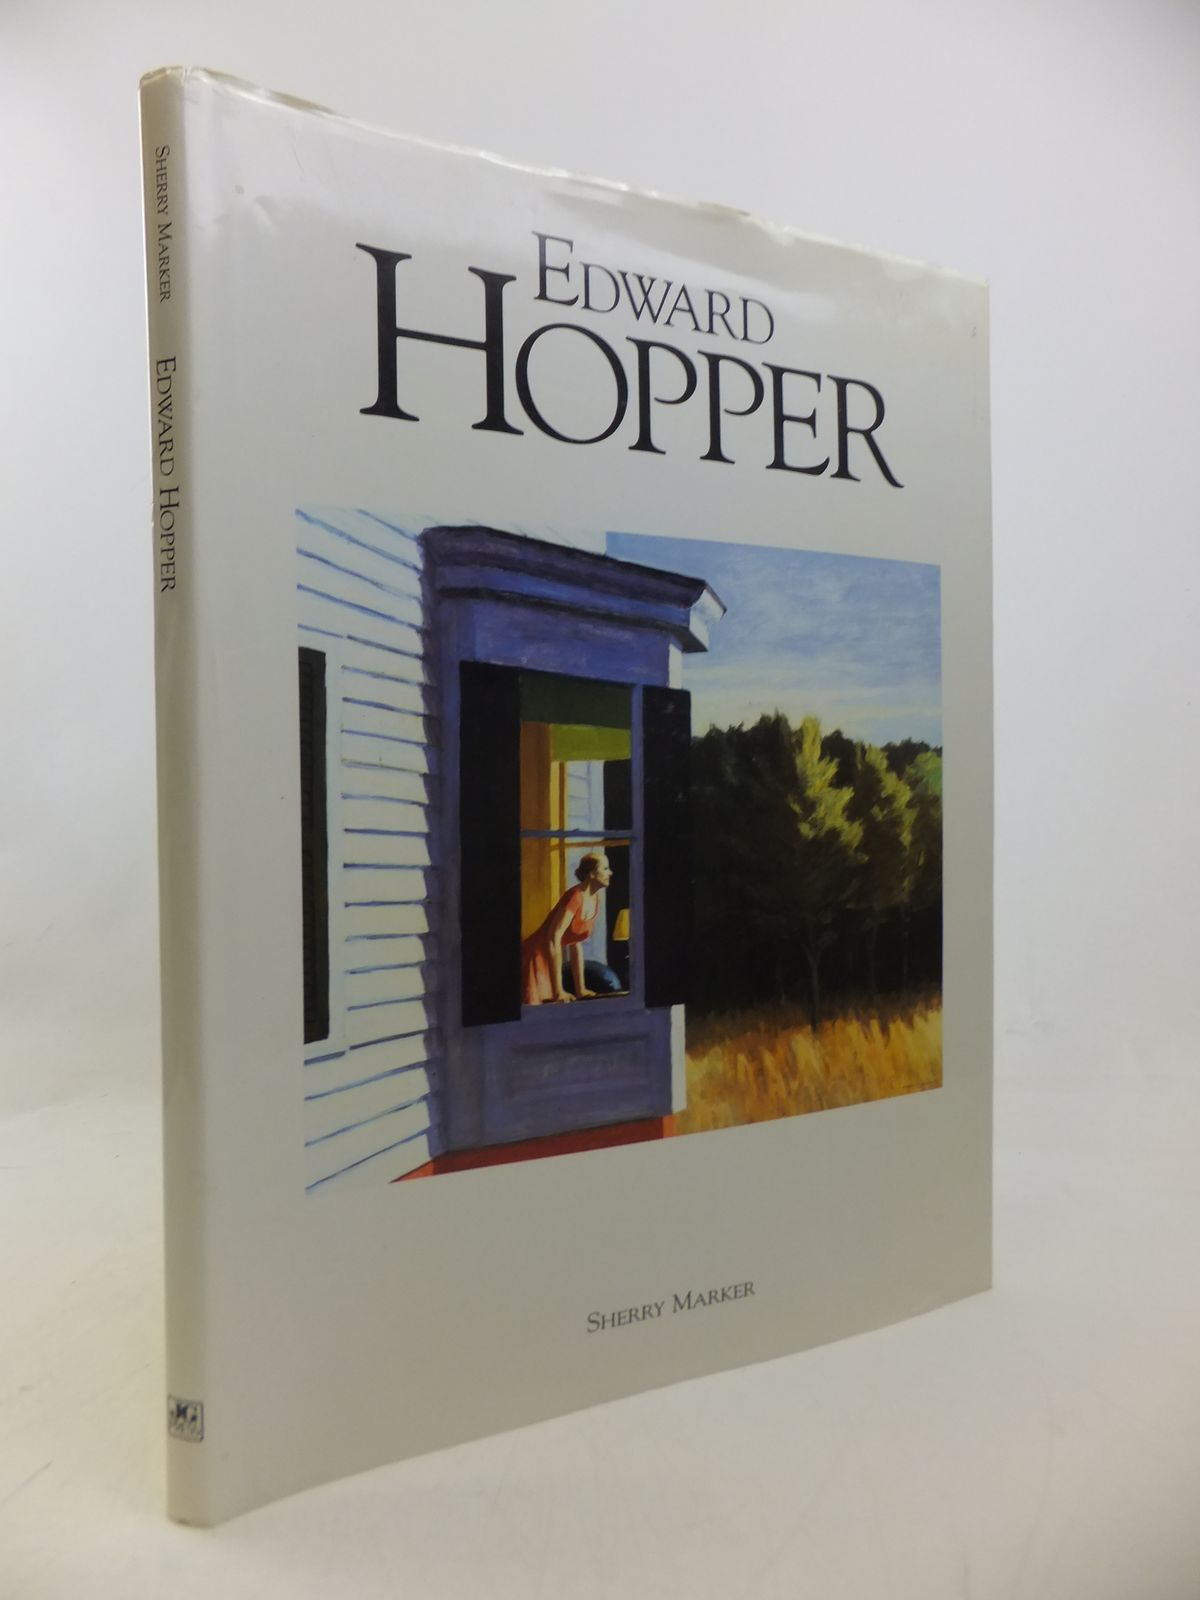 Photo of EDWARD HOPPER written by Marker, Sherry illustrated by Hopper, Edwrad published by World Publications Group, Inc., JG Press (STOCK CODE: 2113207)  for sale by Stella & Rose's Books